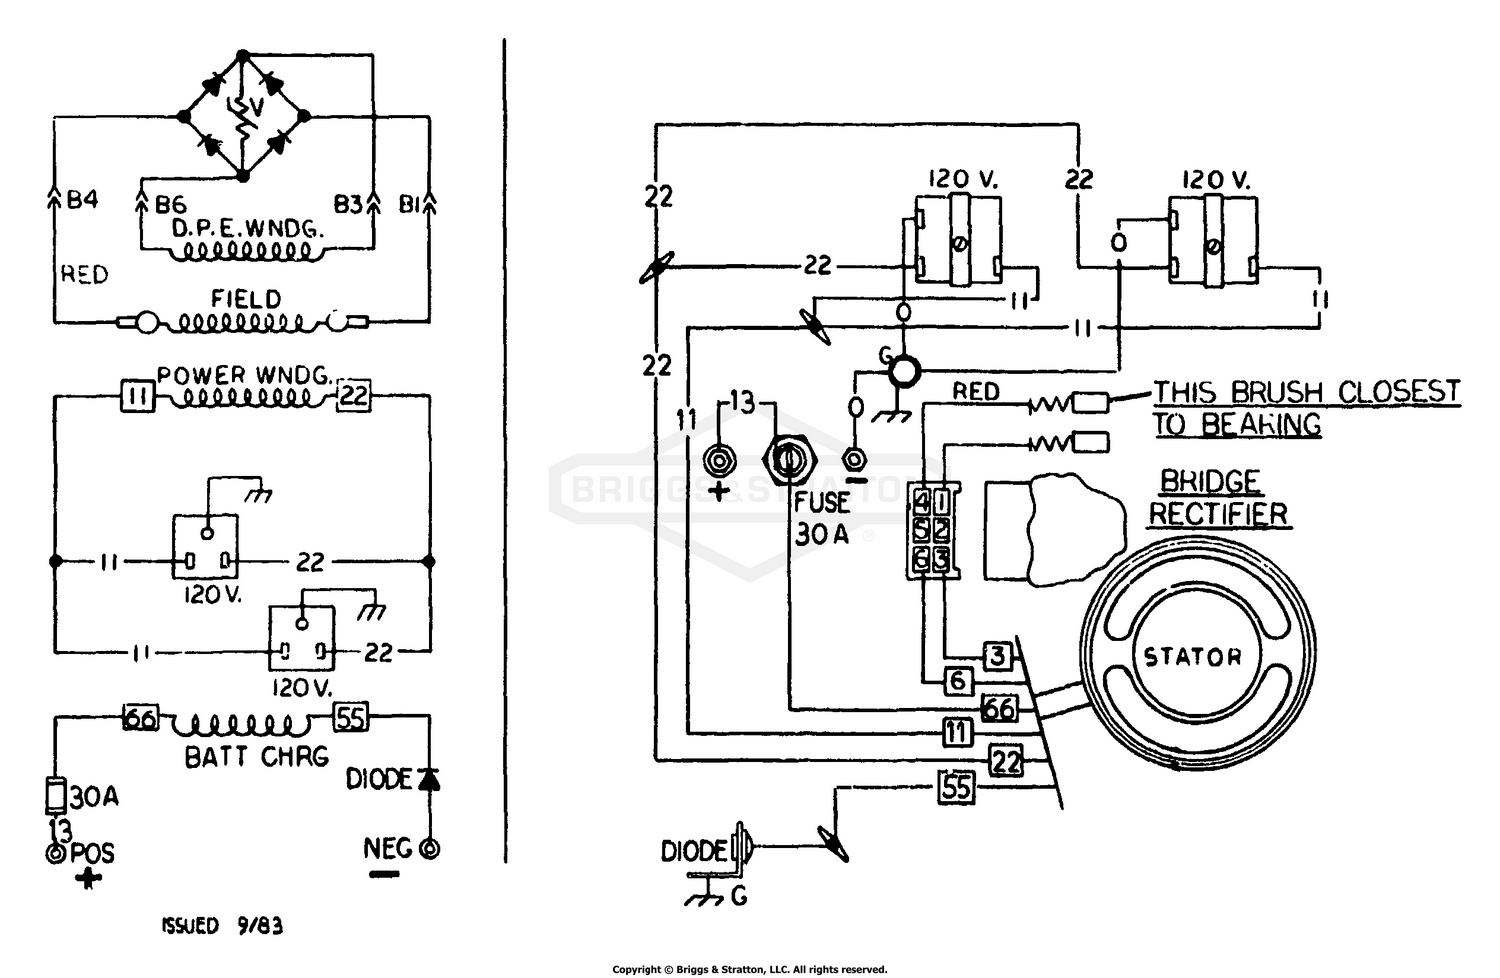 [GJFJ_338]  Briggs & Stratton Power Products_DEL_26072017021729 8760-2 -  580.328172, 1,350 Watt Craftsman Electrical Schematic/Wiring Diagram | Briggs Wiring Schematic |  | Weingartz